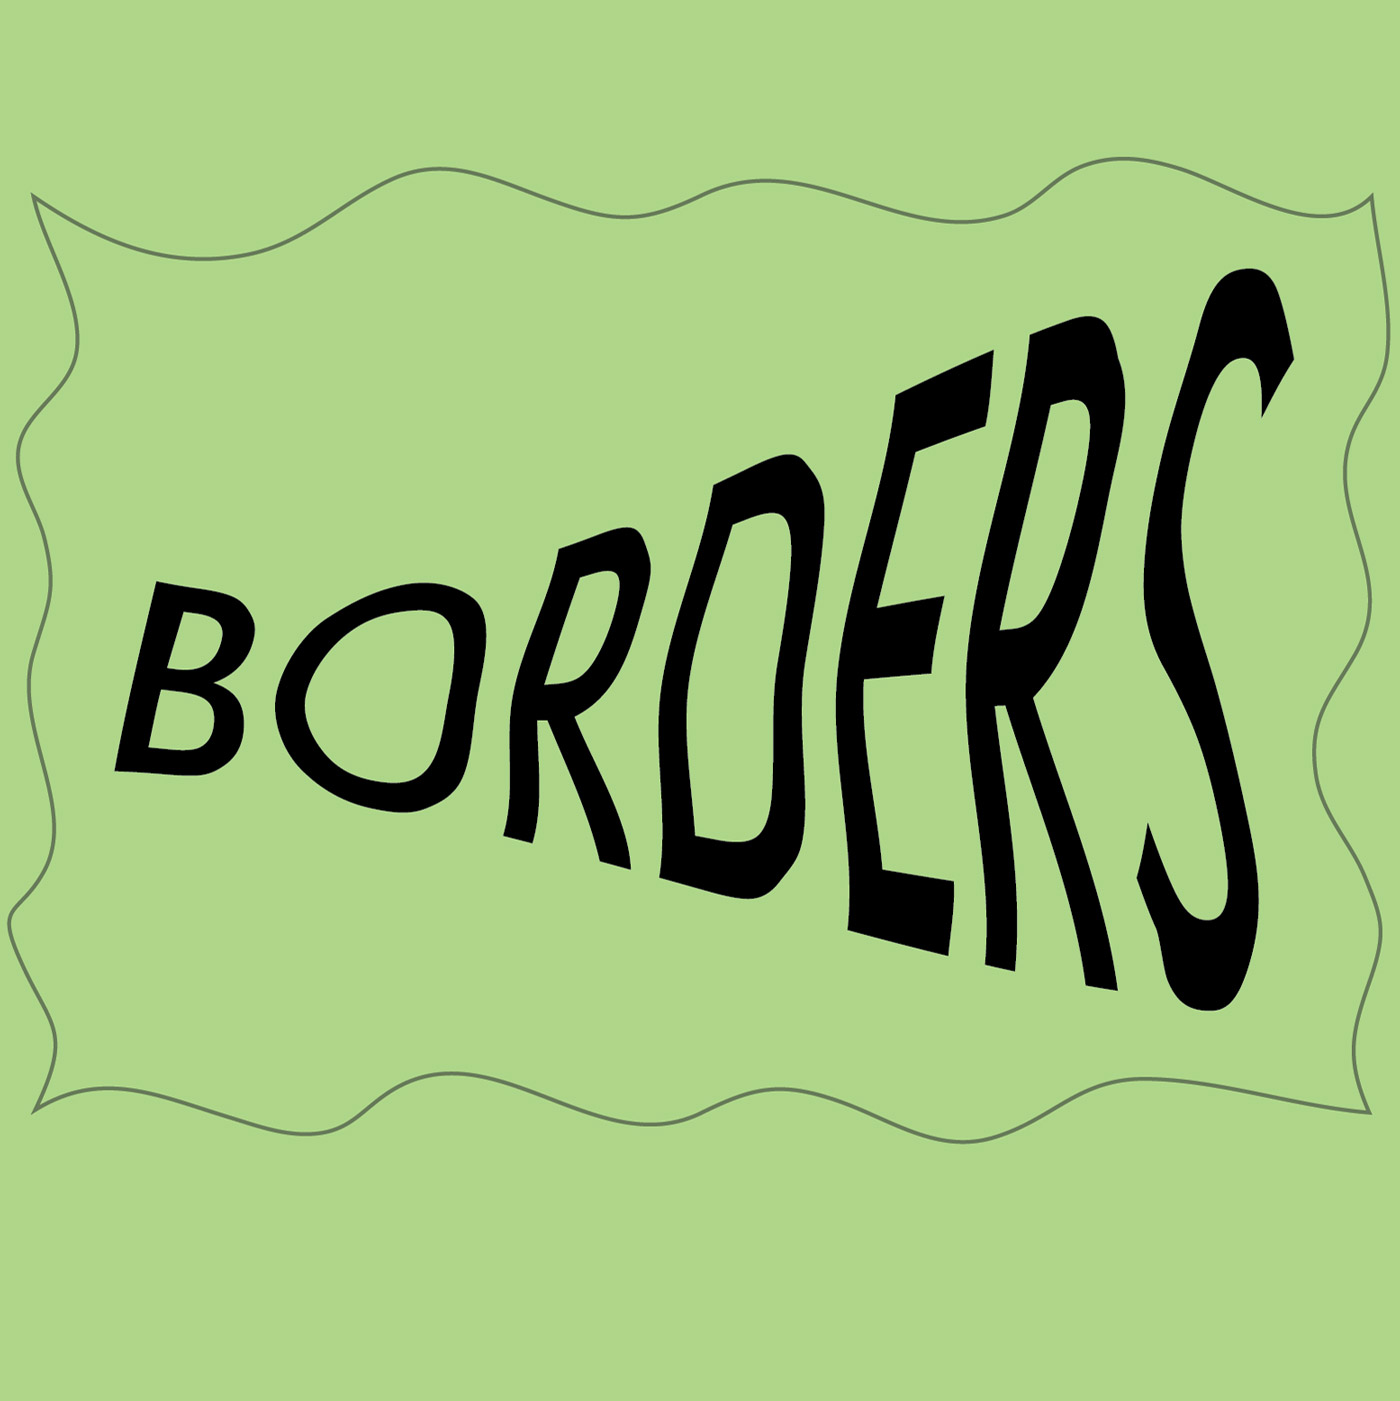 """the word """"borders"""" in warped black text surrounded by wavy line against light green background"""